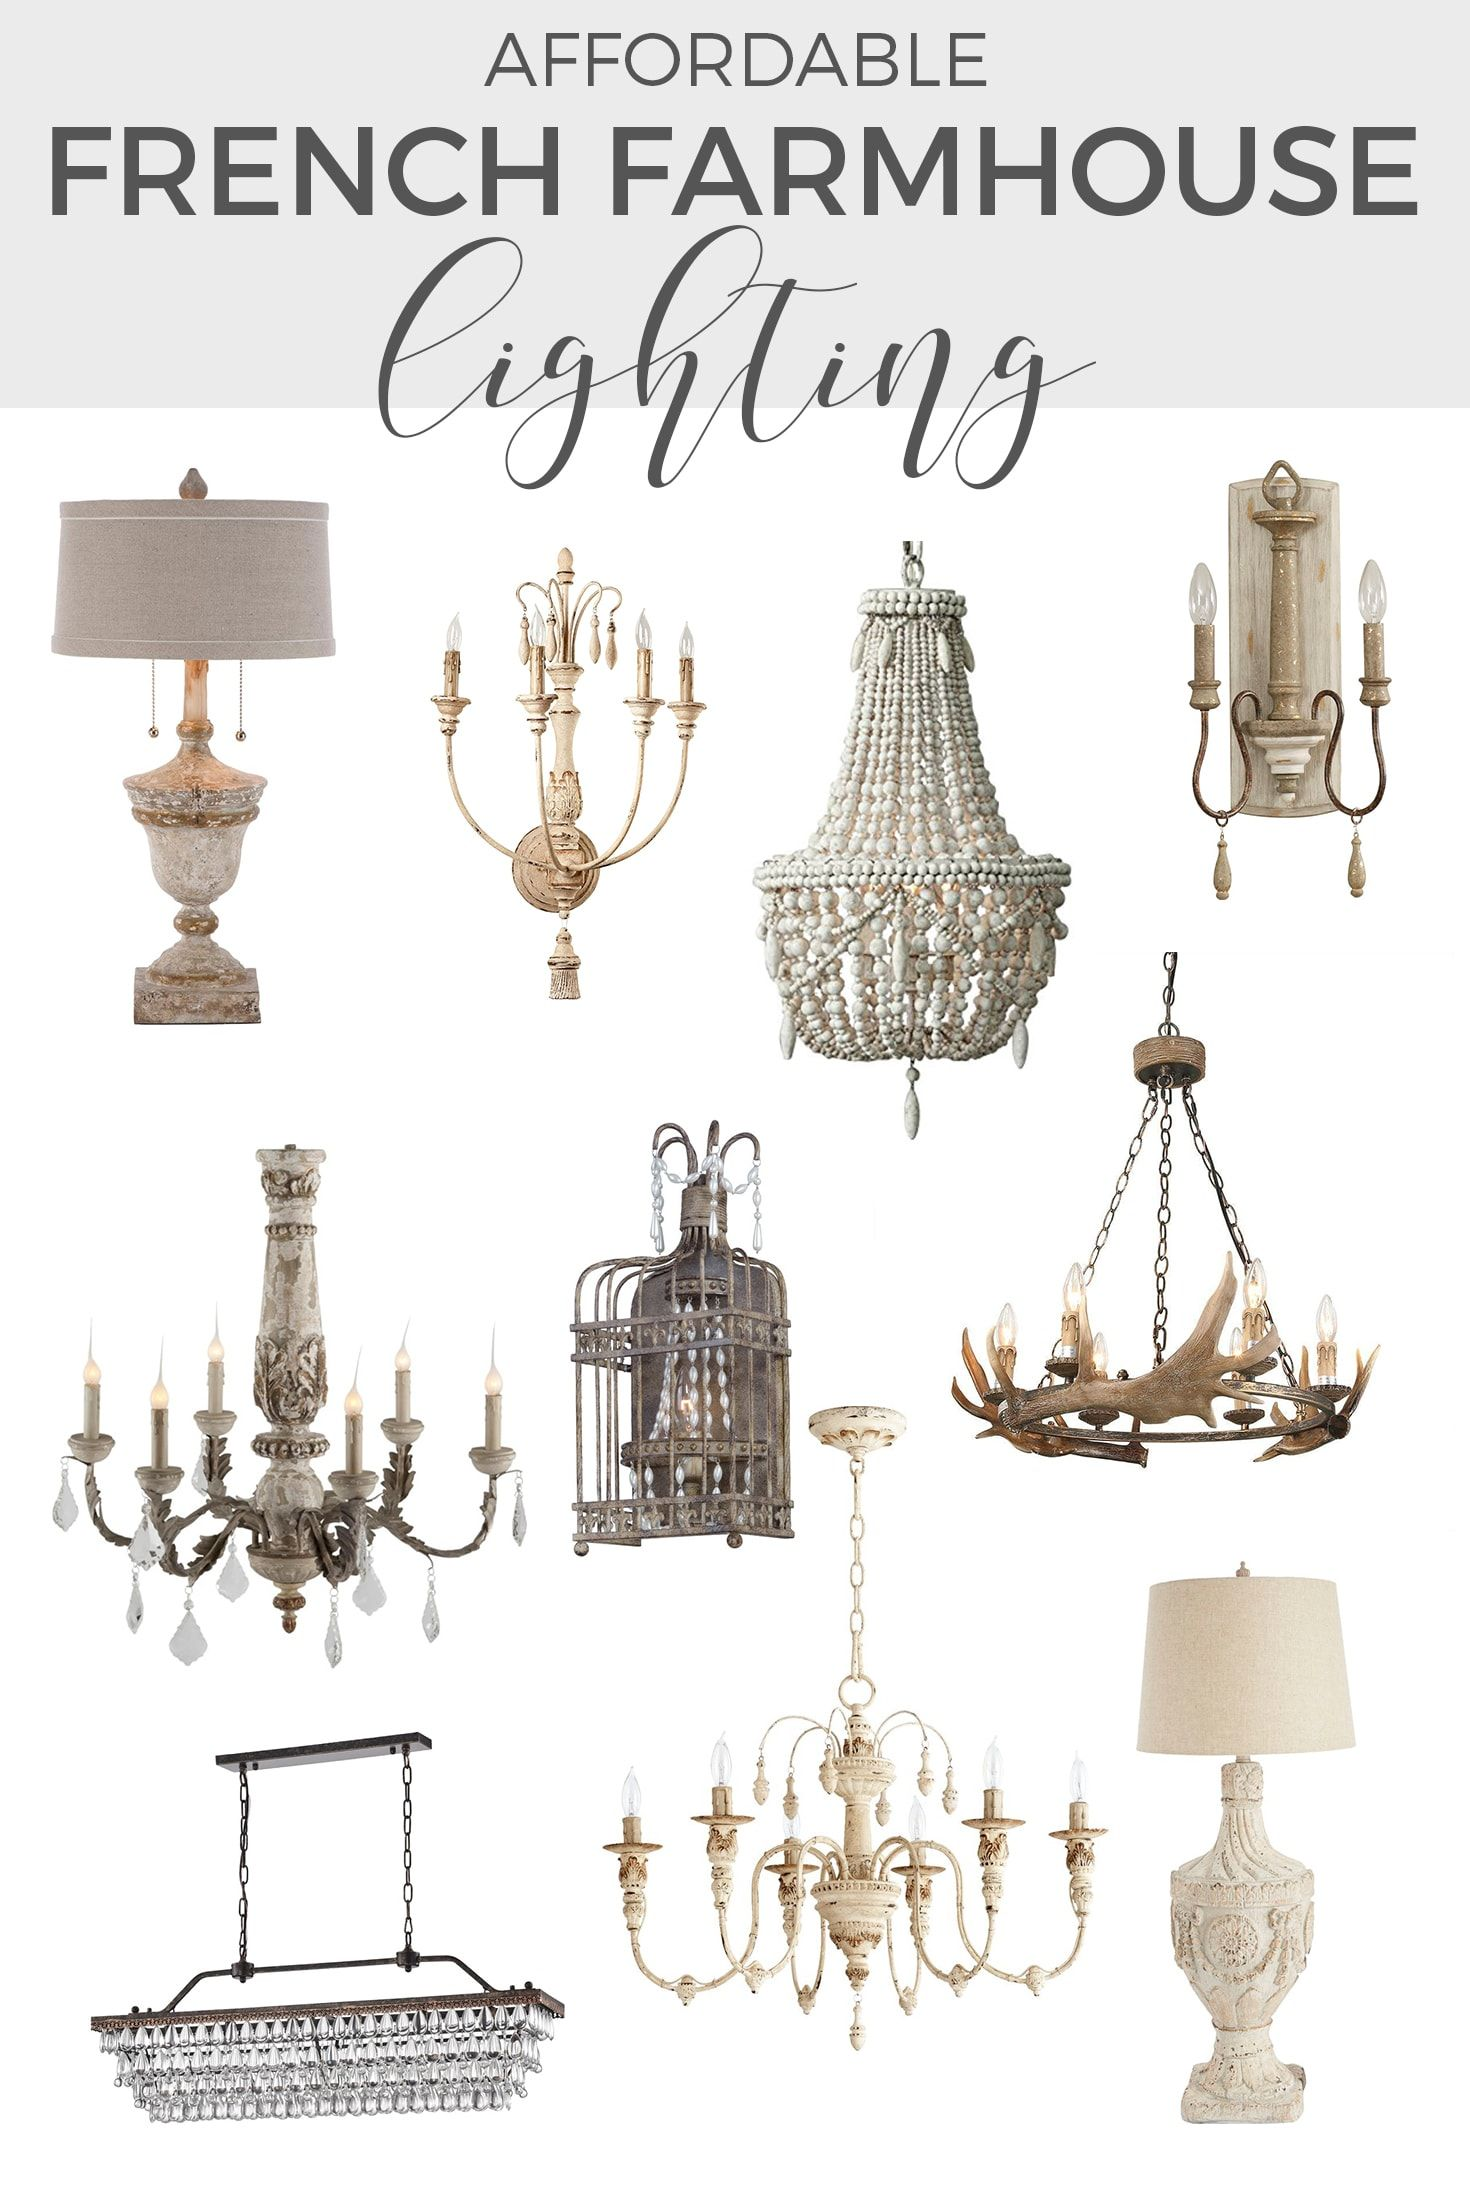 French Farmhouse Lighting